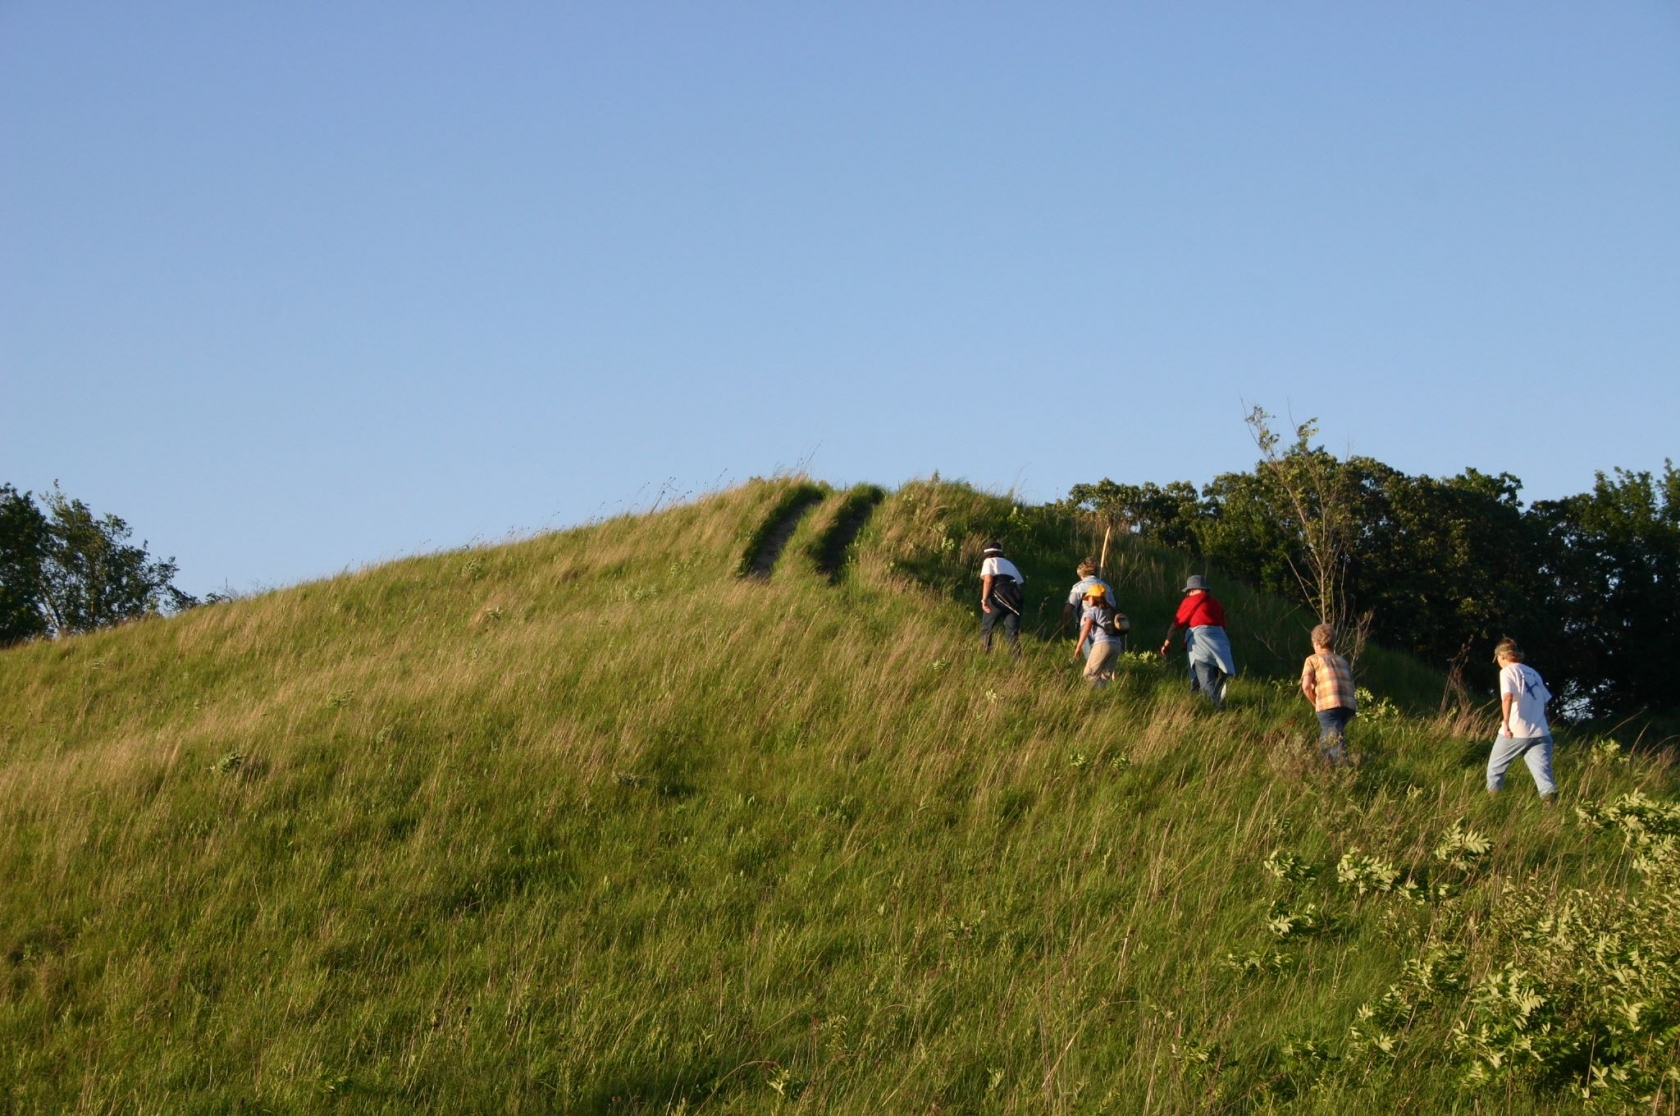 5 people hiking up a trail on grassy hill with blue skies along the Lewis & Clark National Historic Trail